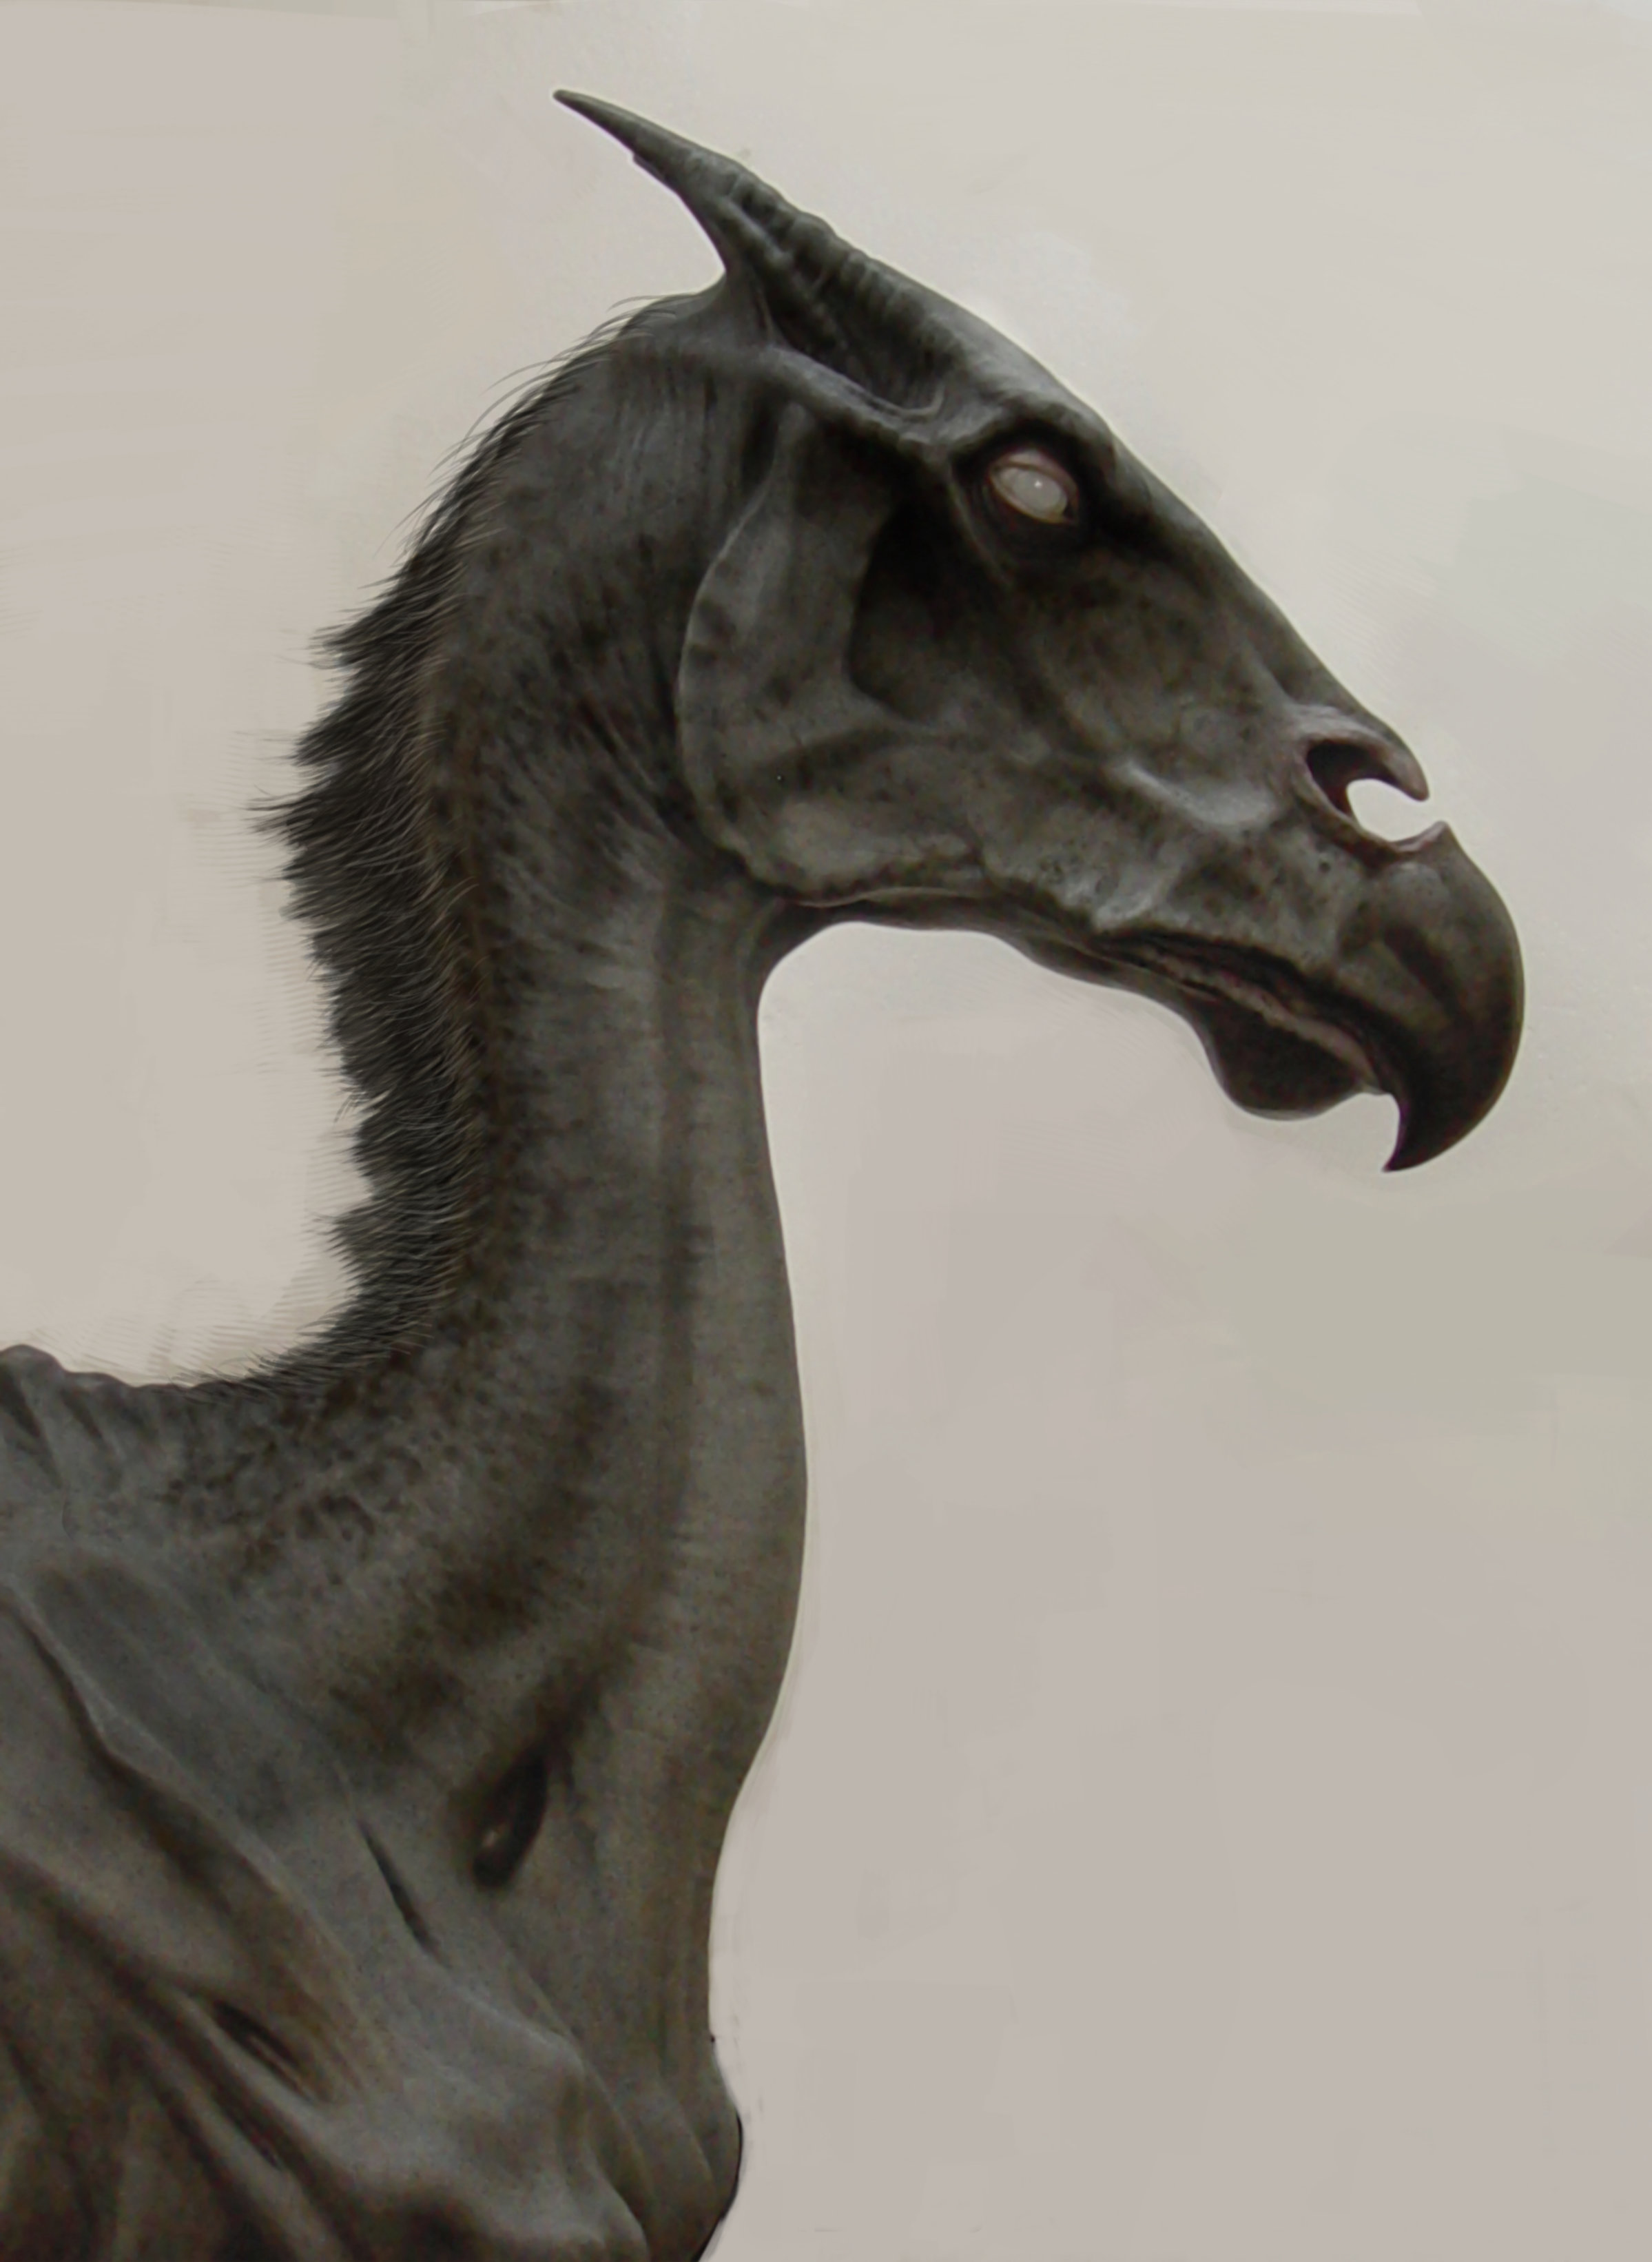 Thestra, skeletal looking black horse, facing right.